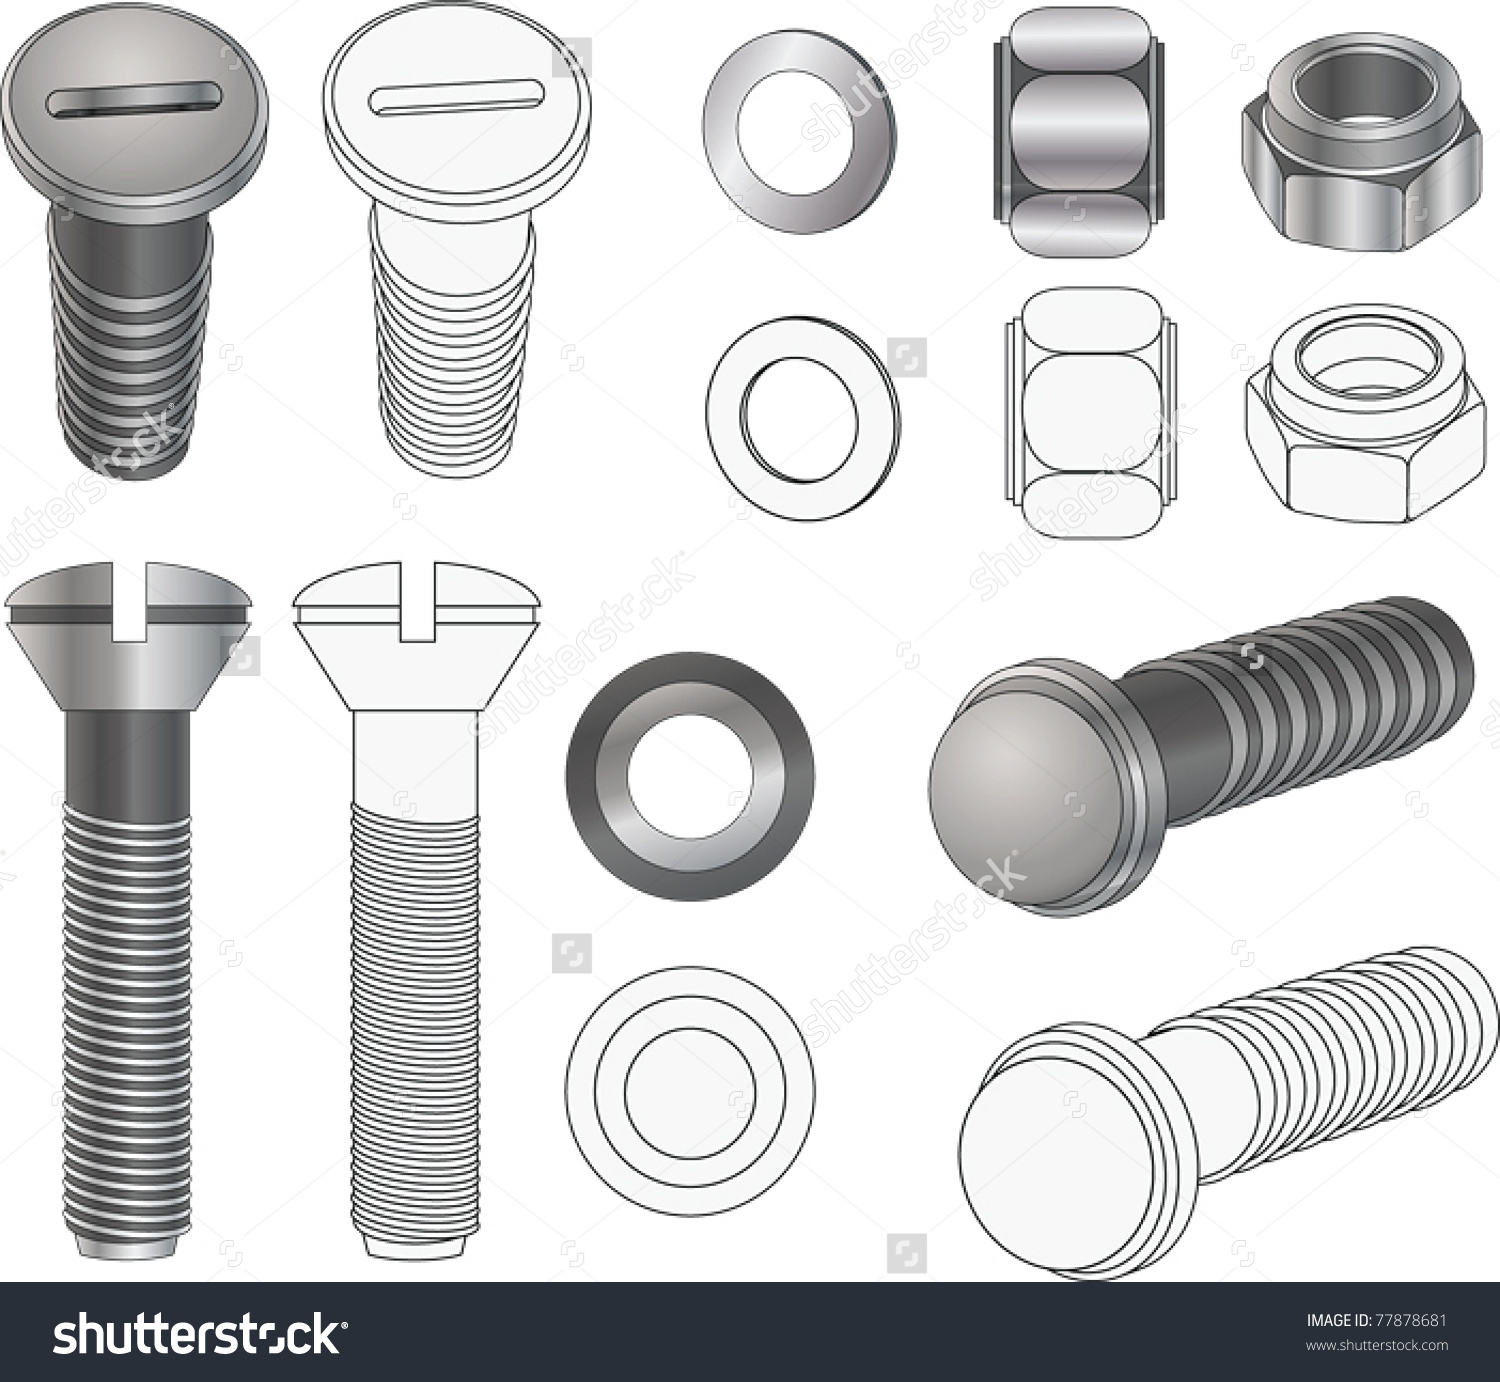 Complete Set Bolts Nuts Clipart Stock Vector 77878681.